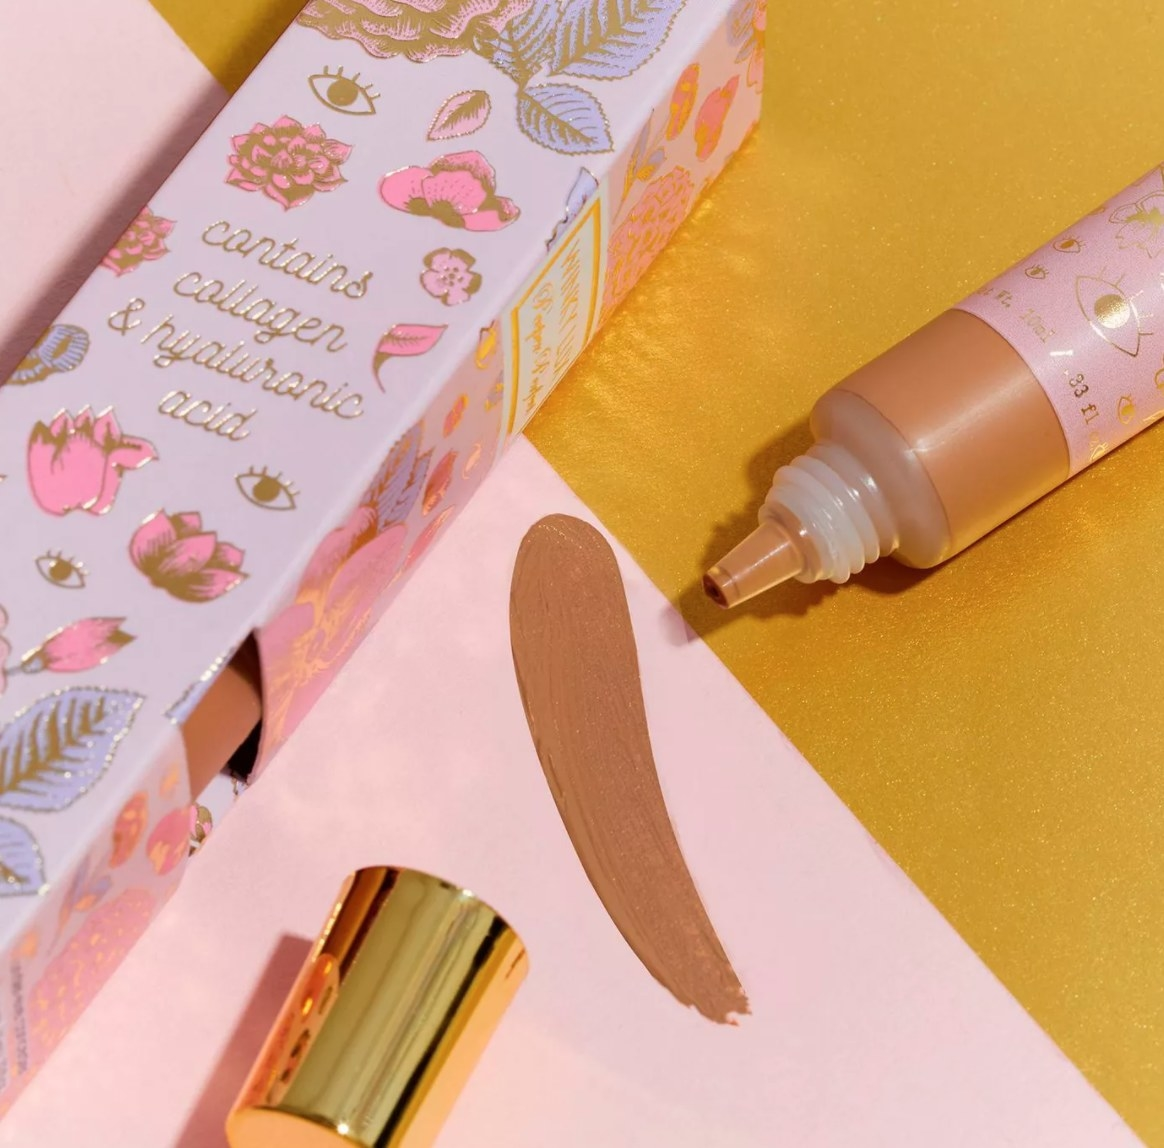 open tube of winky lux concealer next to box